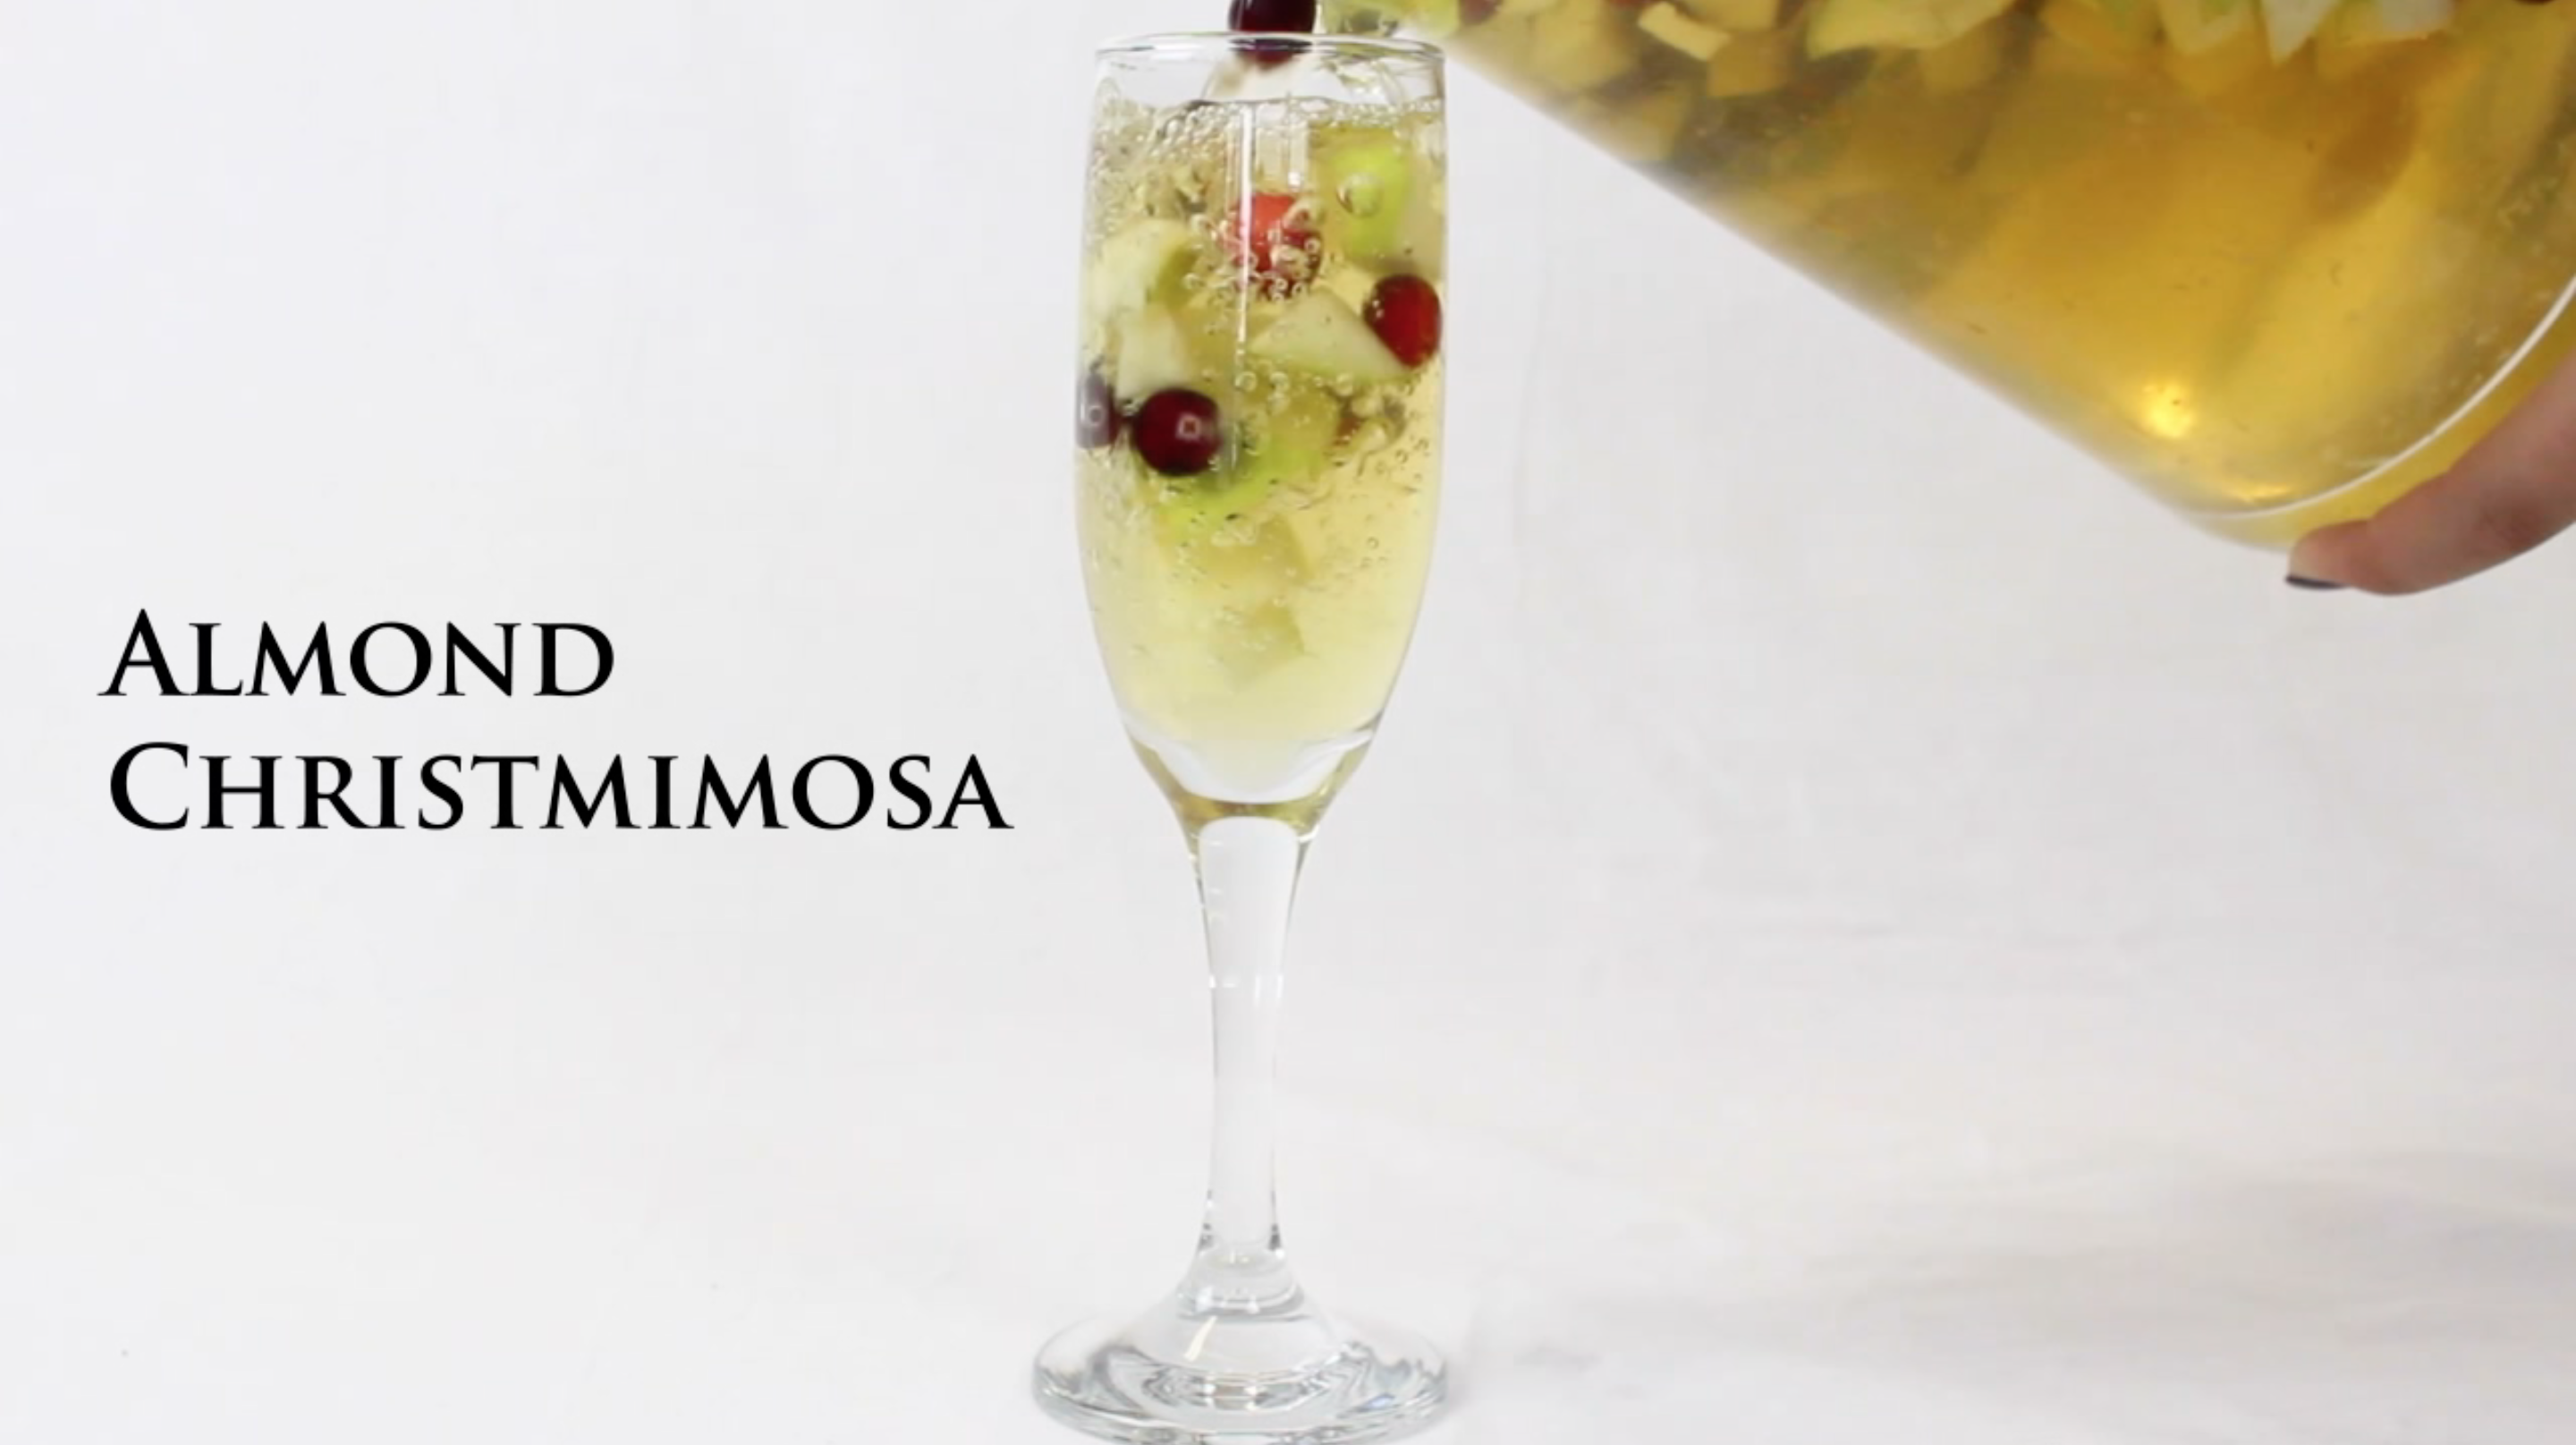 Almond Christmimosa